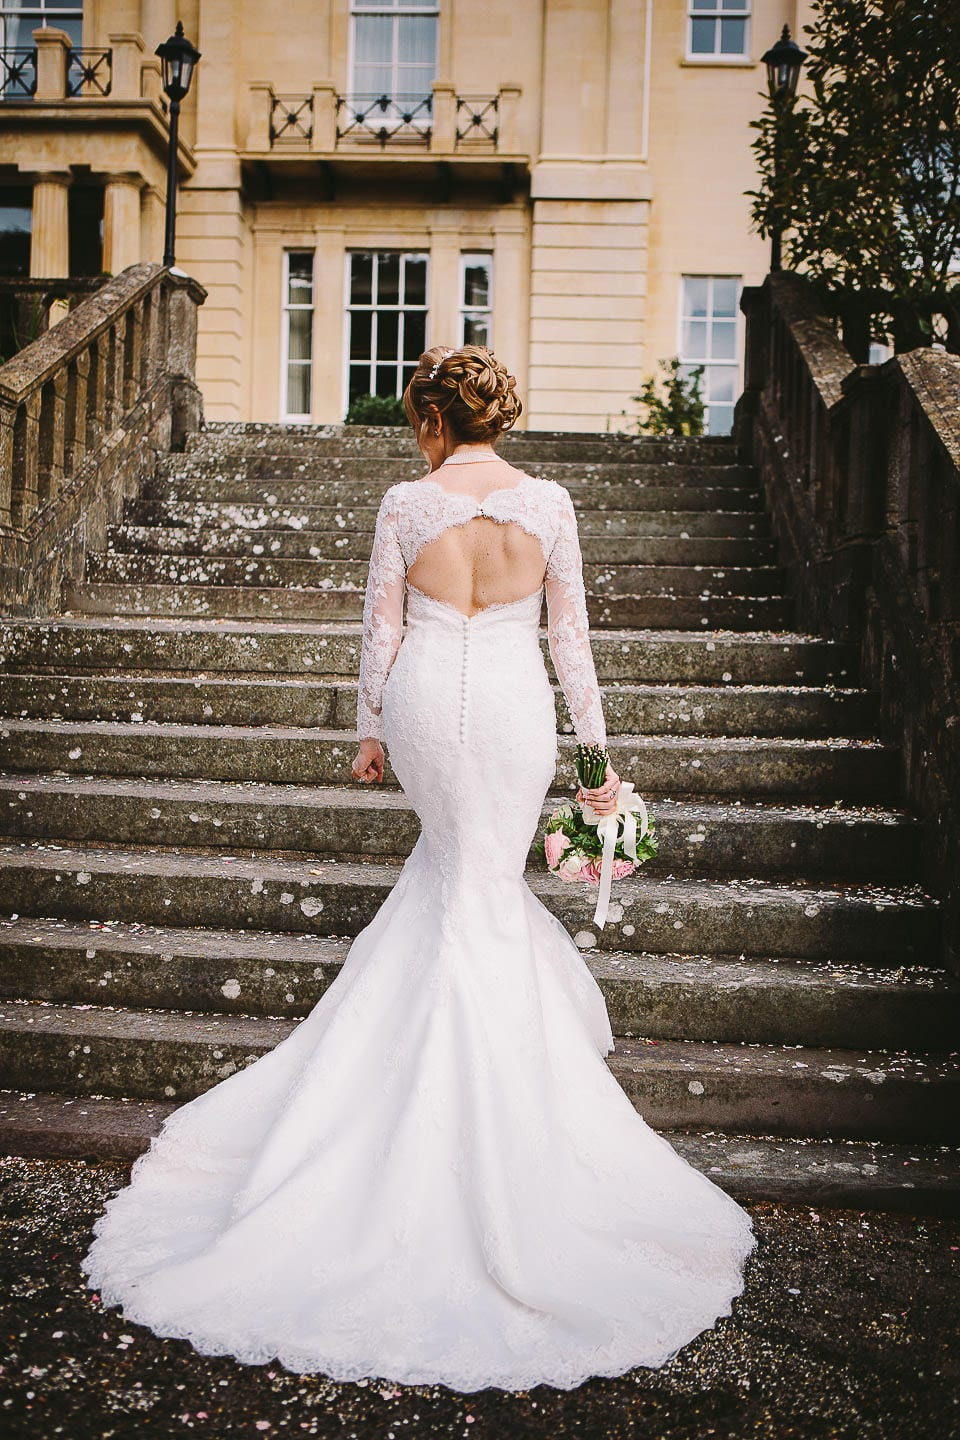 Bride walking up the steps in the garden